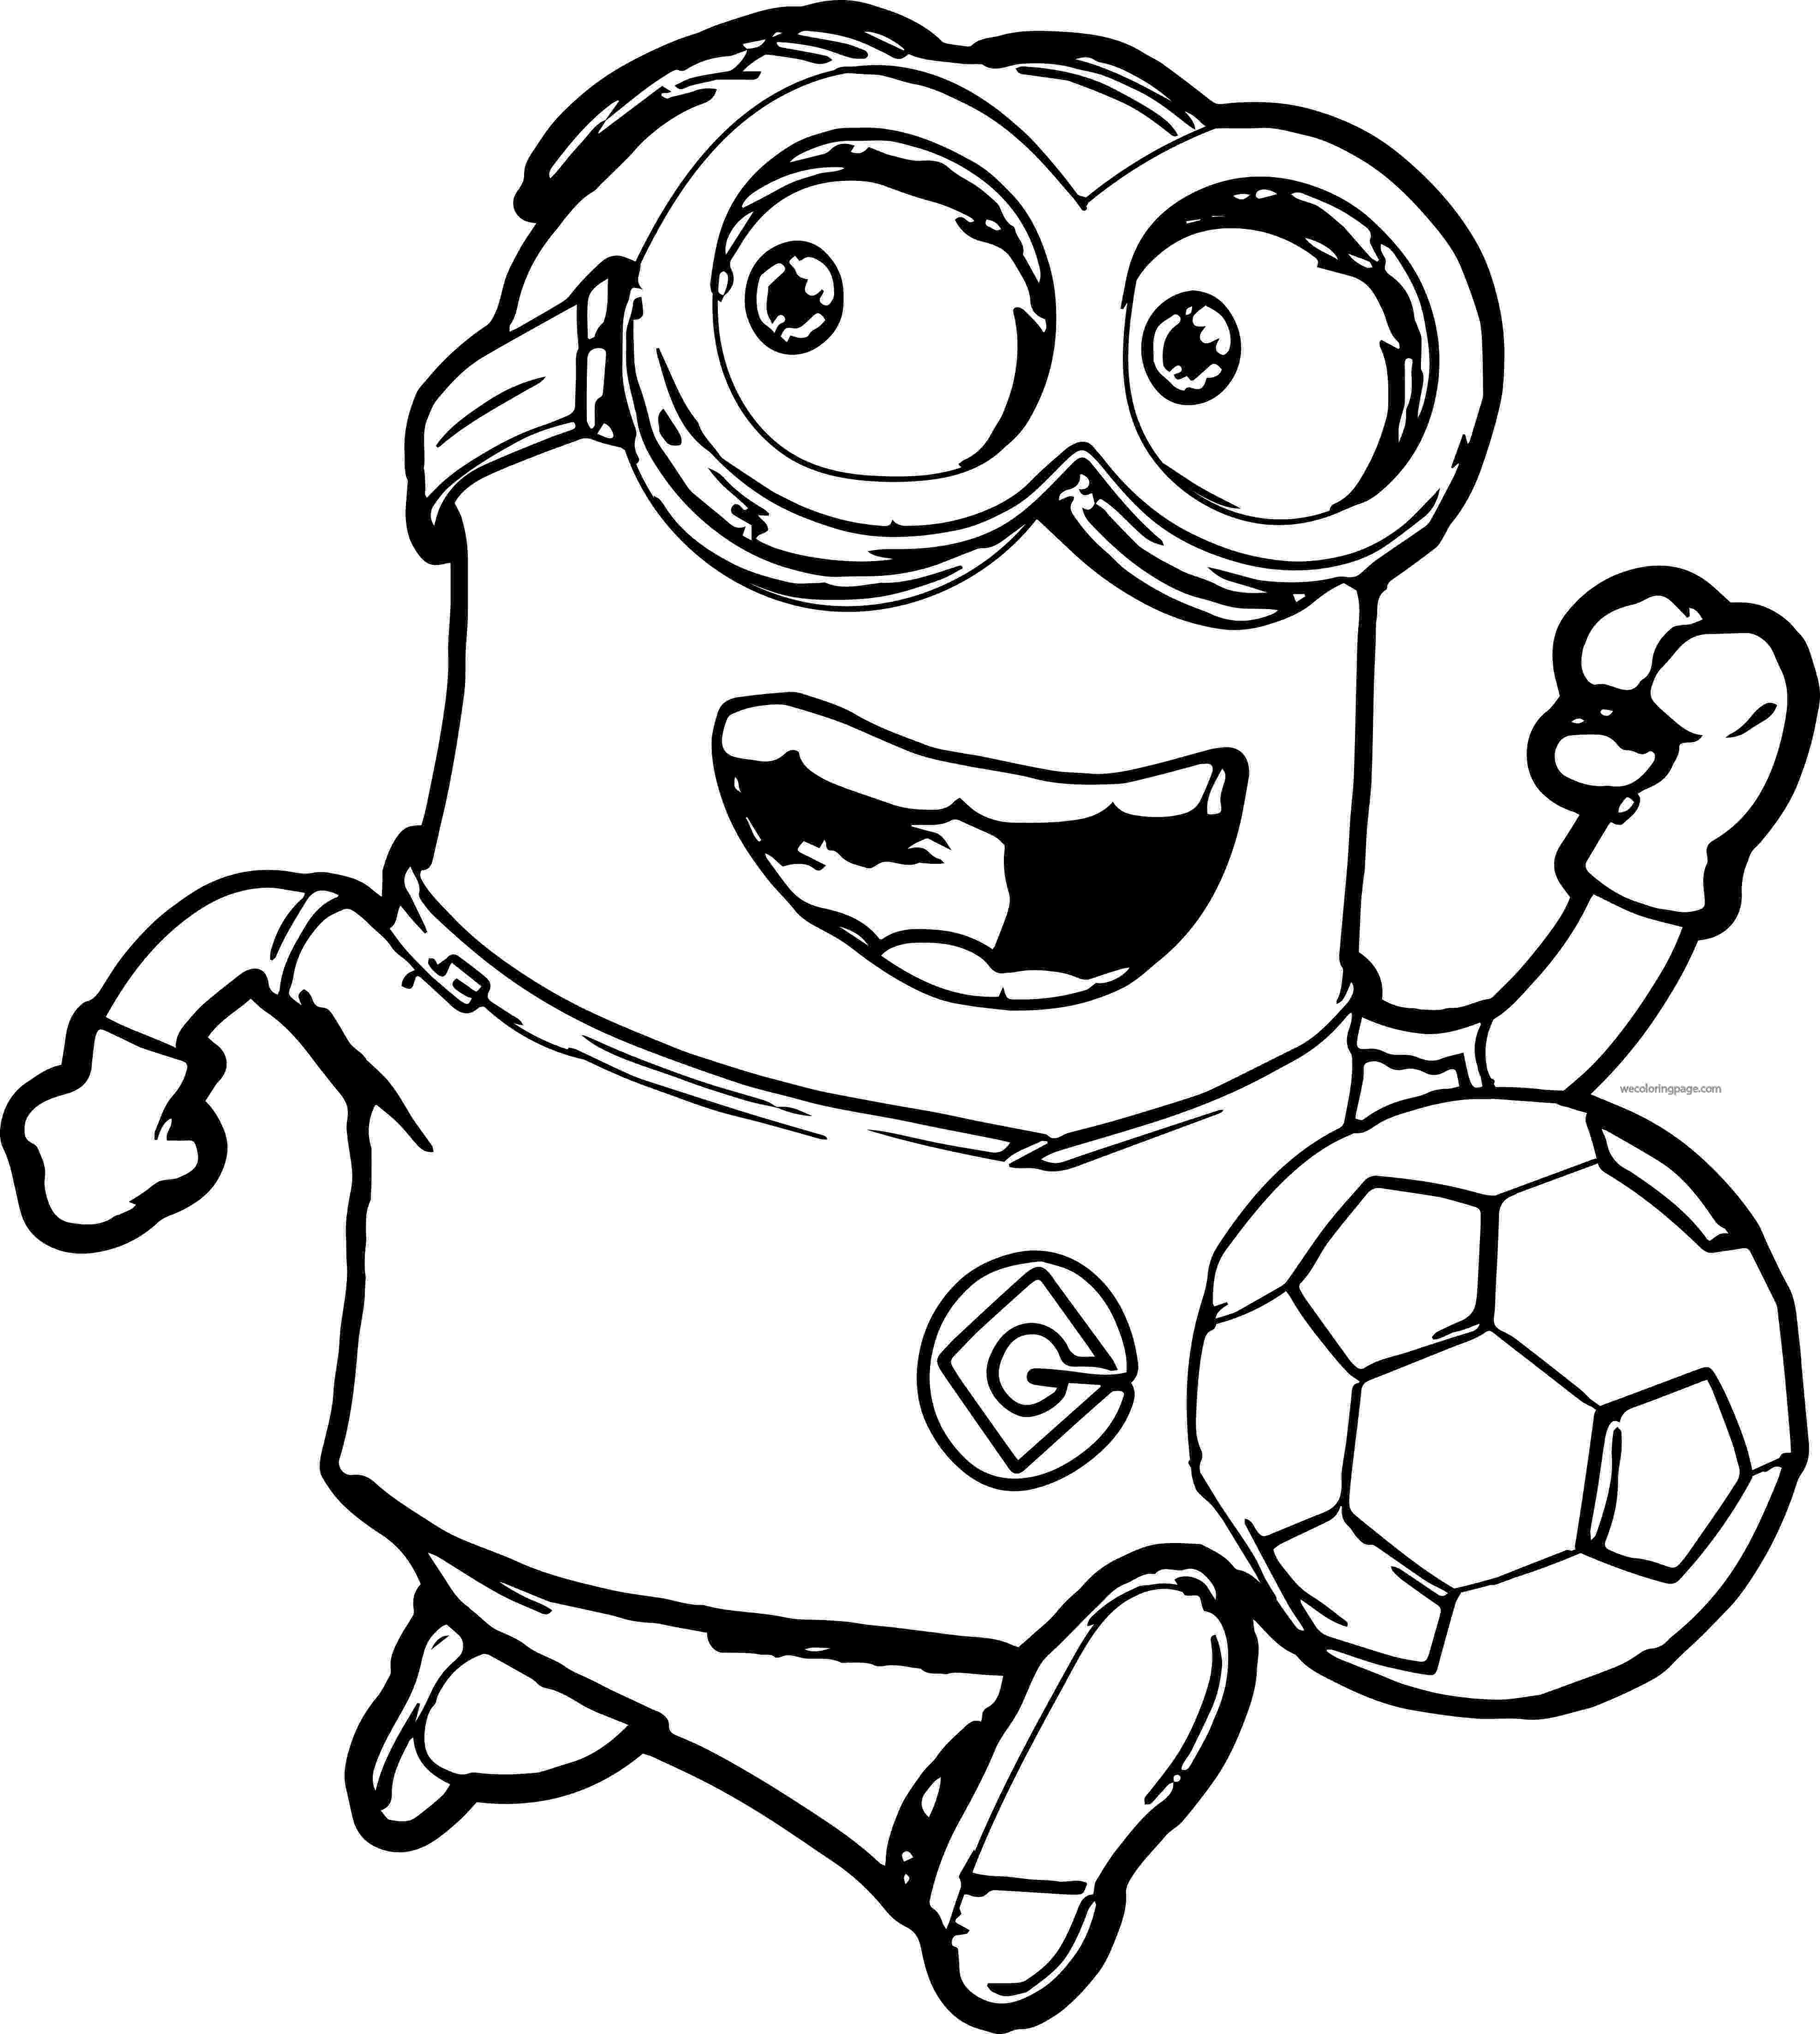 soccer player colouring pages soccer player coloring pages to download and print for free colouring player pages soccer